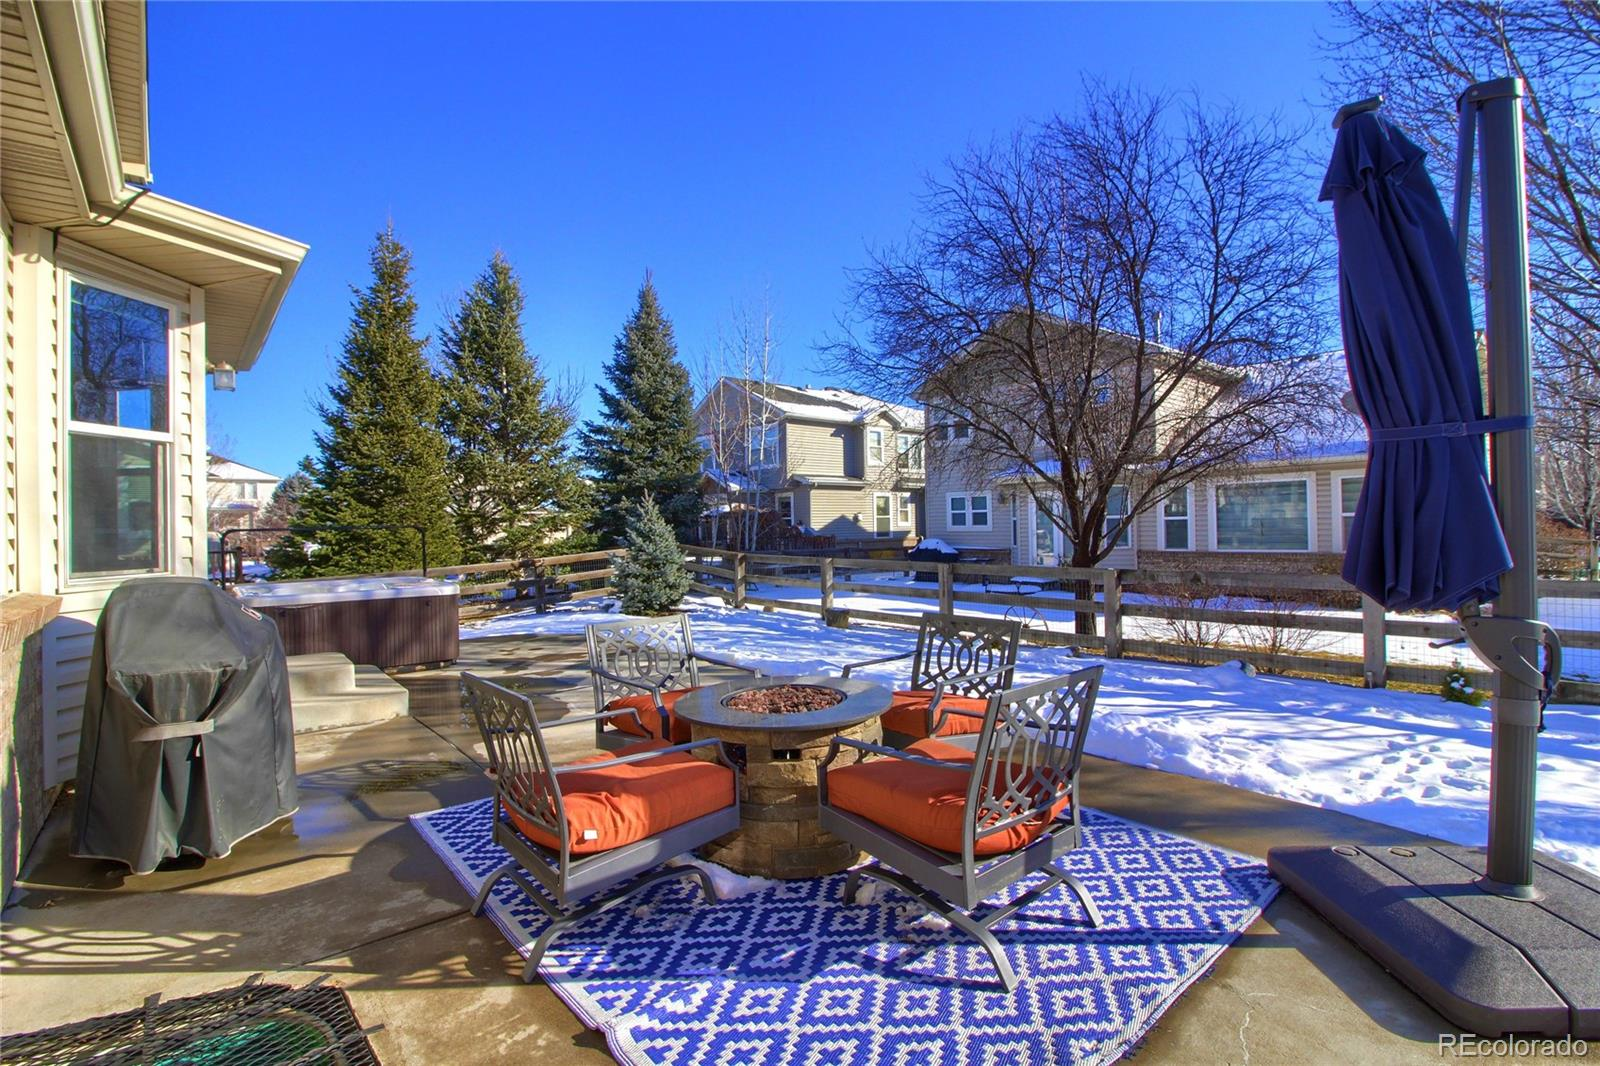 MLS# 3161208 - 28 - 1068 W 135th Court, Westminster, CO 80234